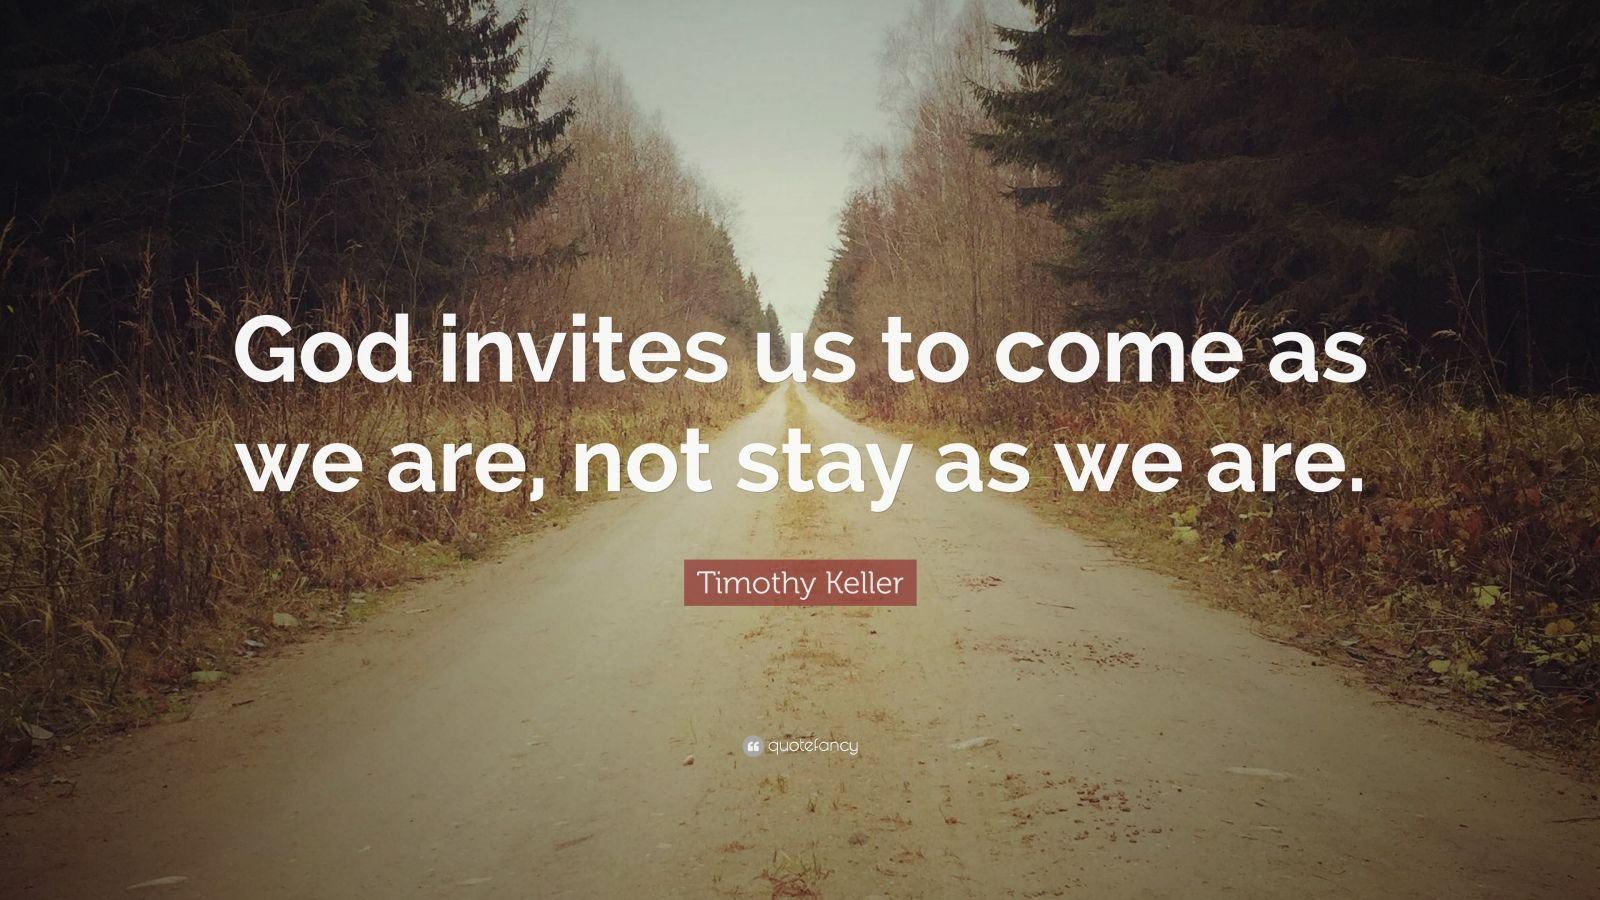 Timothy Keller Quotes (100 wallpapers) - Quotefancy